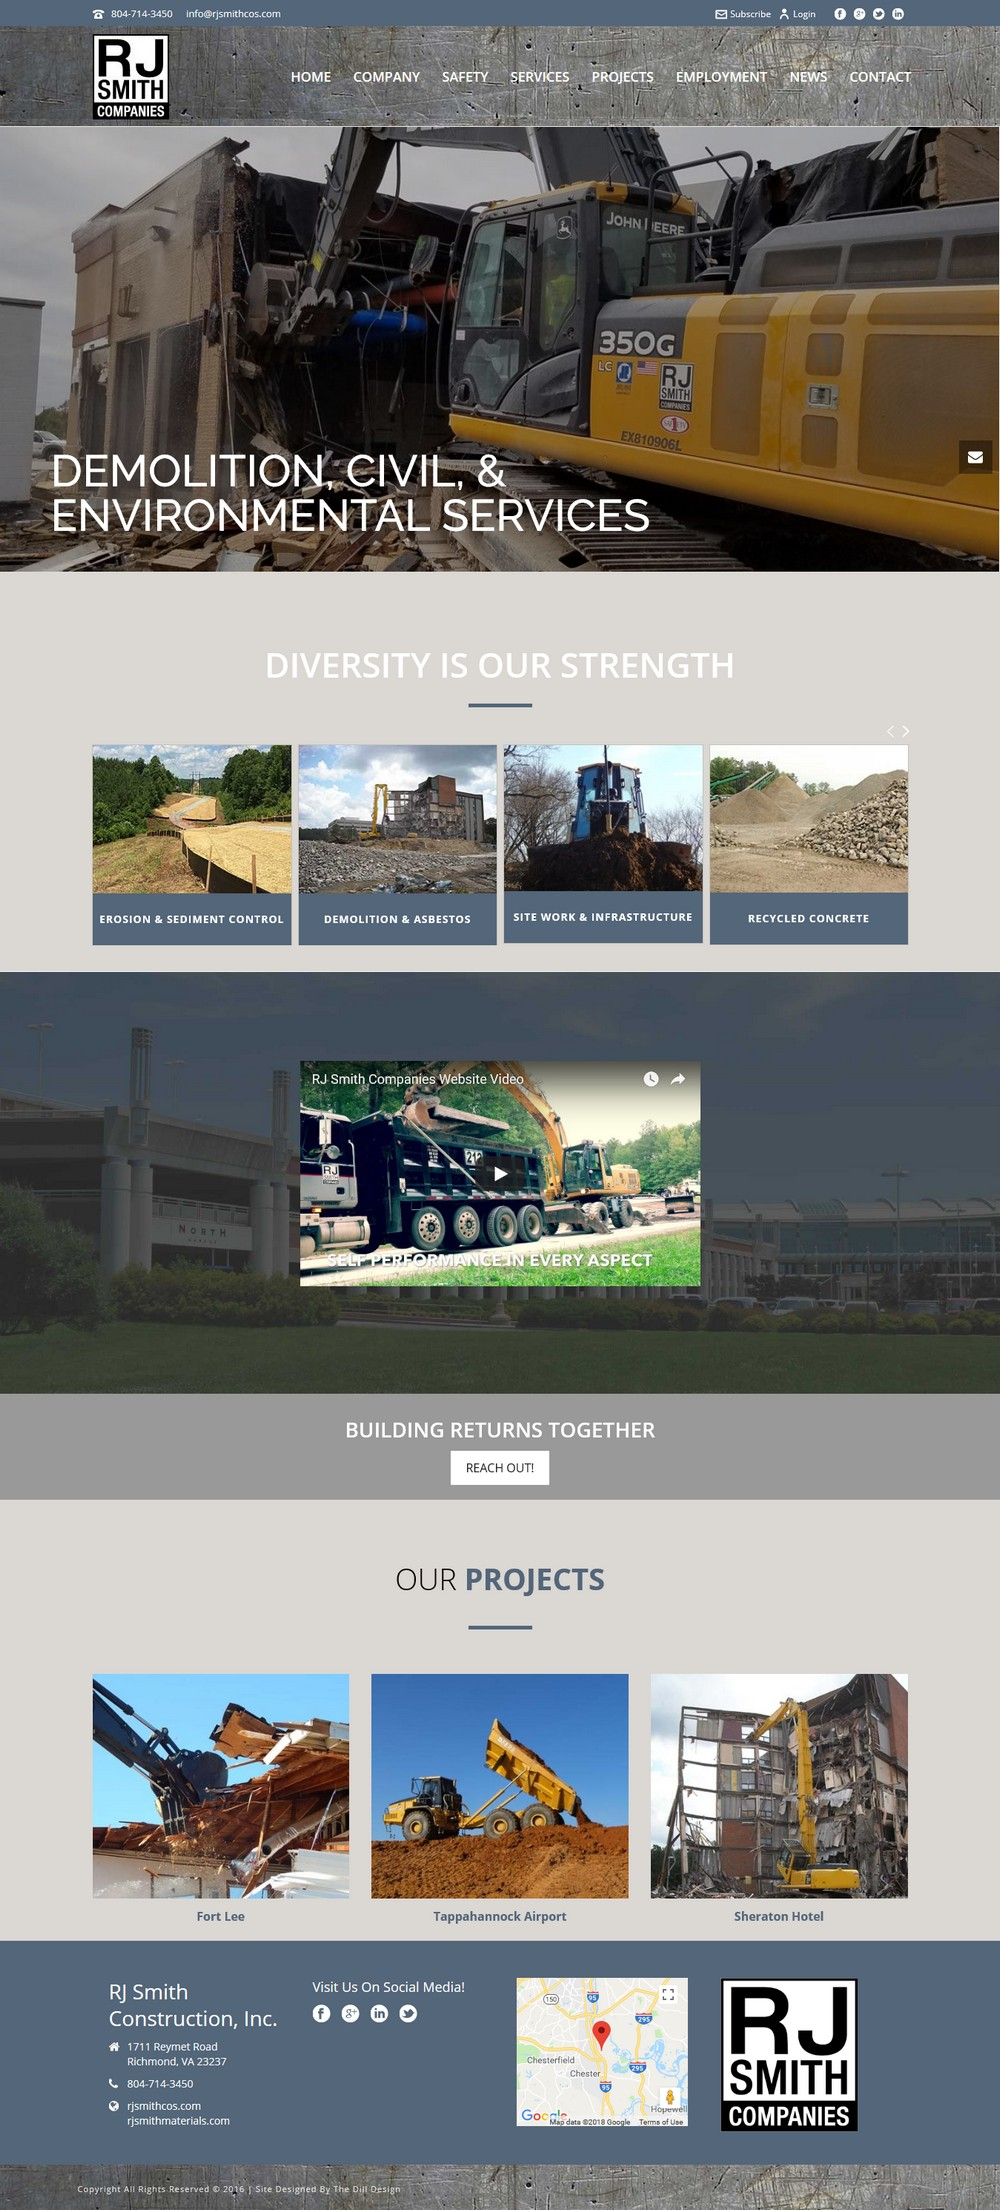 RJ Smith Companies - Successfully Delivered Projects On-Time and On-Budget. Improved Website Conversation Rate By 80% Against Existing Control.